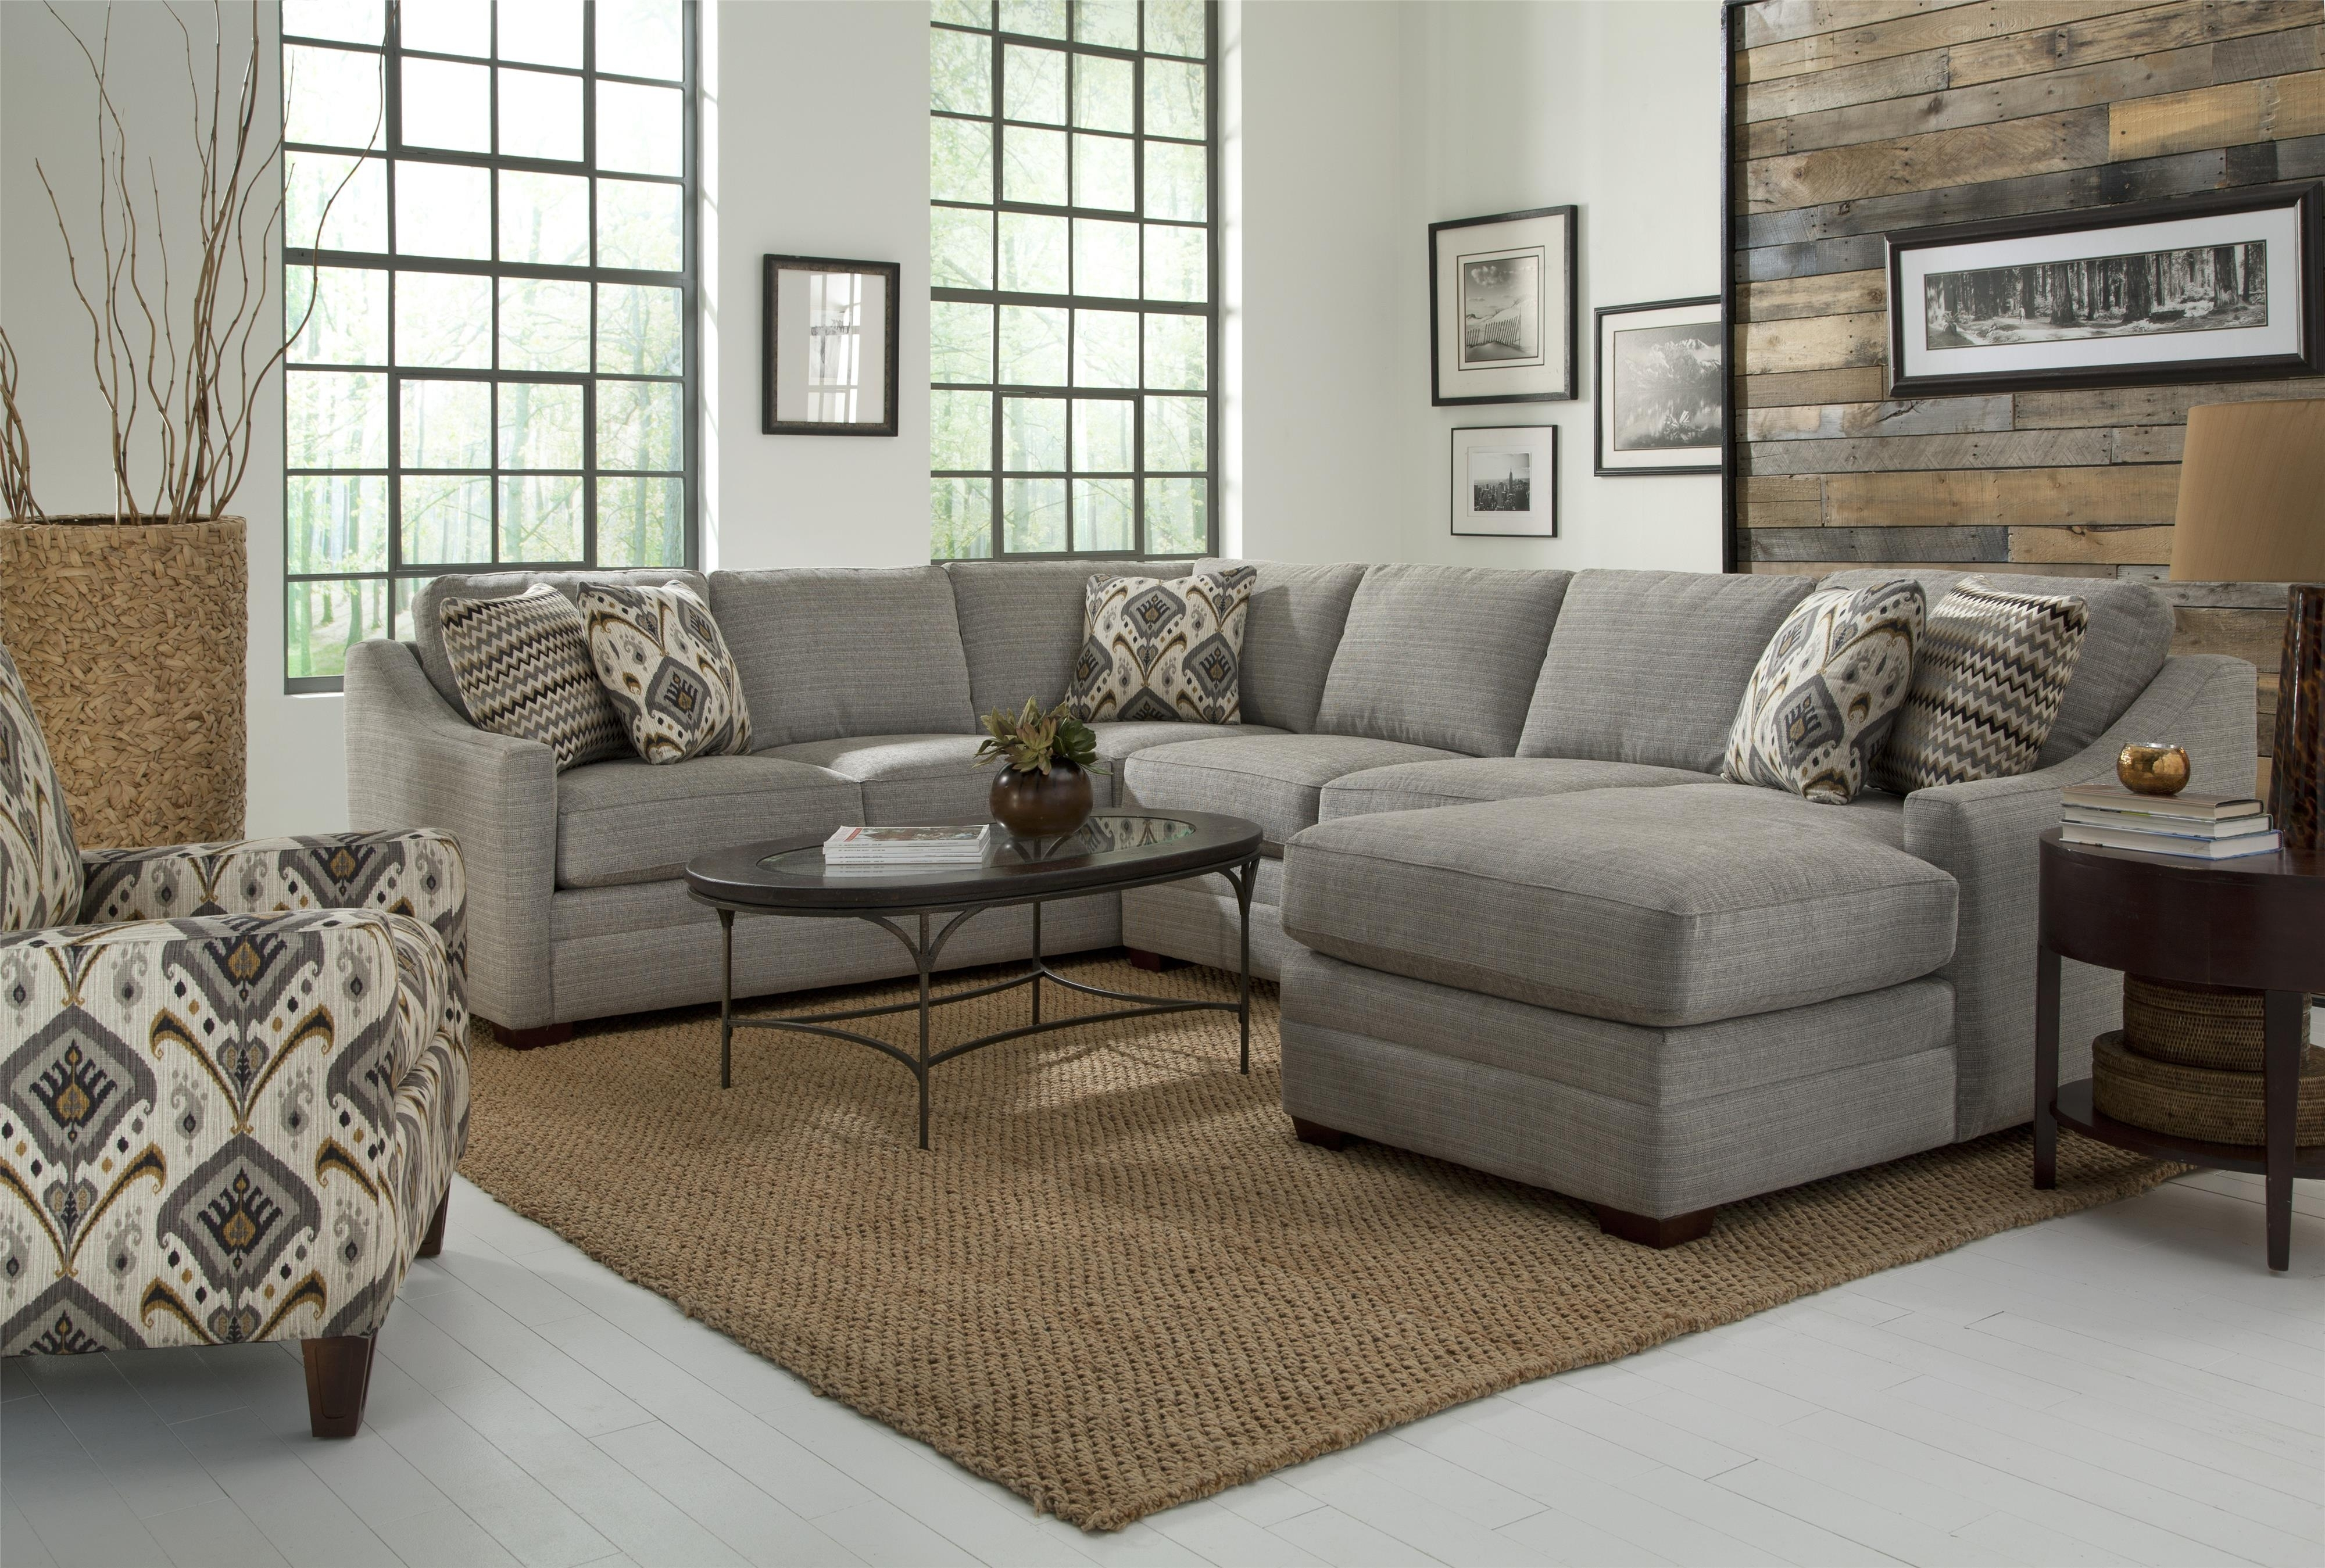 Craftmaster F9 Custom Collection Customizable Four Piece Sectional intended for Avery 2 Piece Sectionals With Raf Armless Chaise (Image 12 of 30)